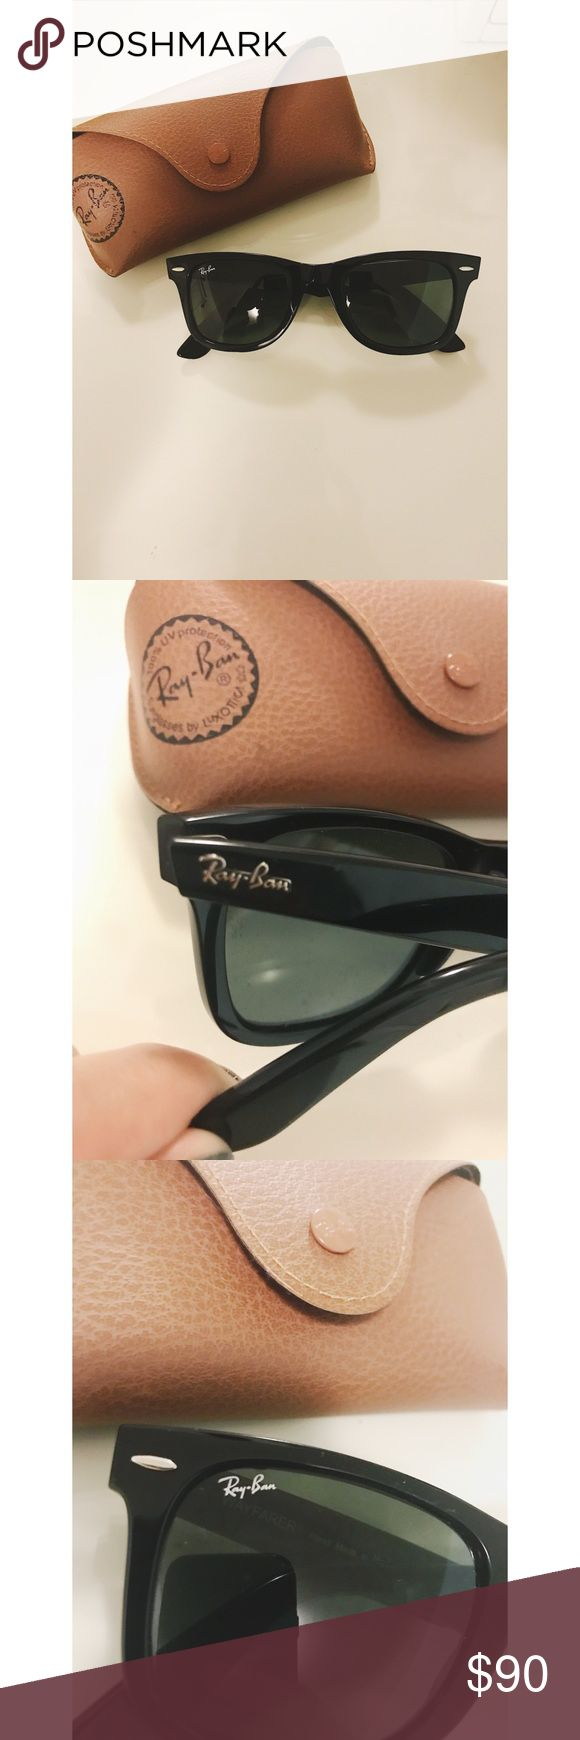 RayBan Original Wayfarer Sunglasses (black) Ray-Ban Original Wayfarer Sunglasses in Black. Worn Once. Like brand new. Comes with brown case. Authentic. Ray-Ban Accessories Sunglasses